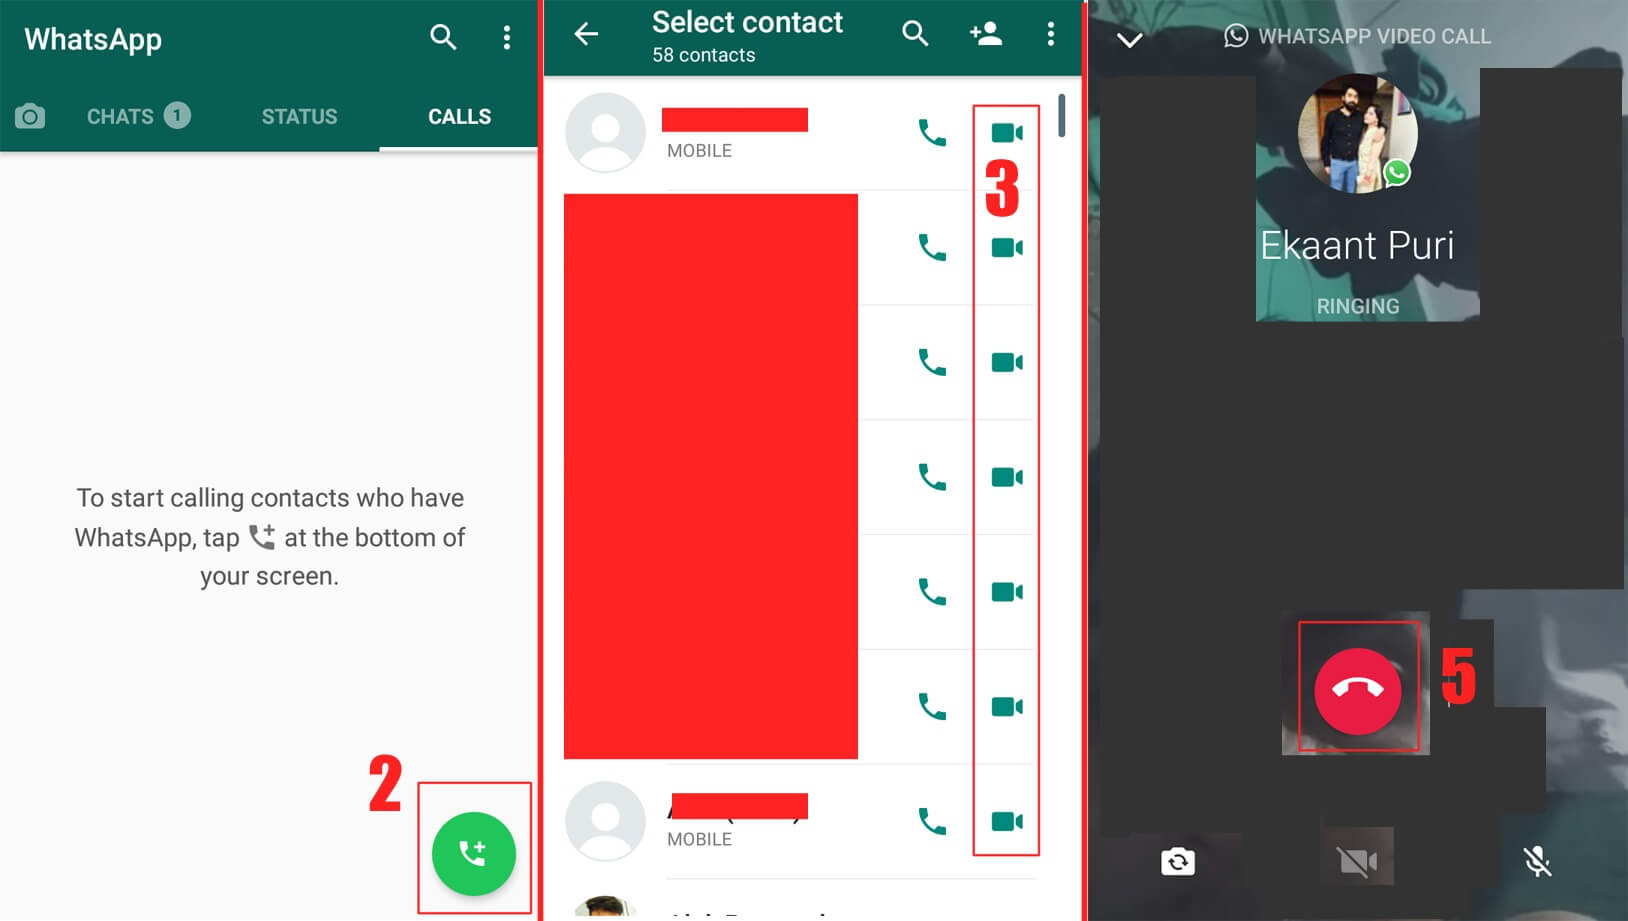 How to Use WhatsApp Video Calling – WhatsApp Video Call Data Usage